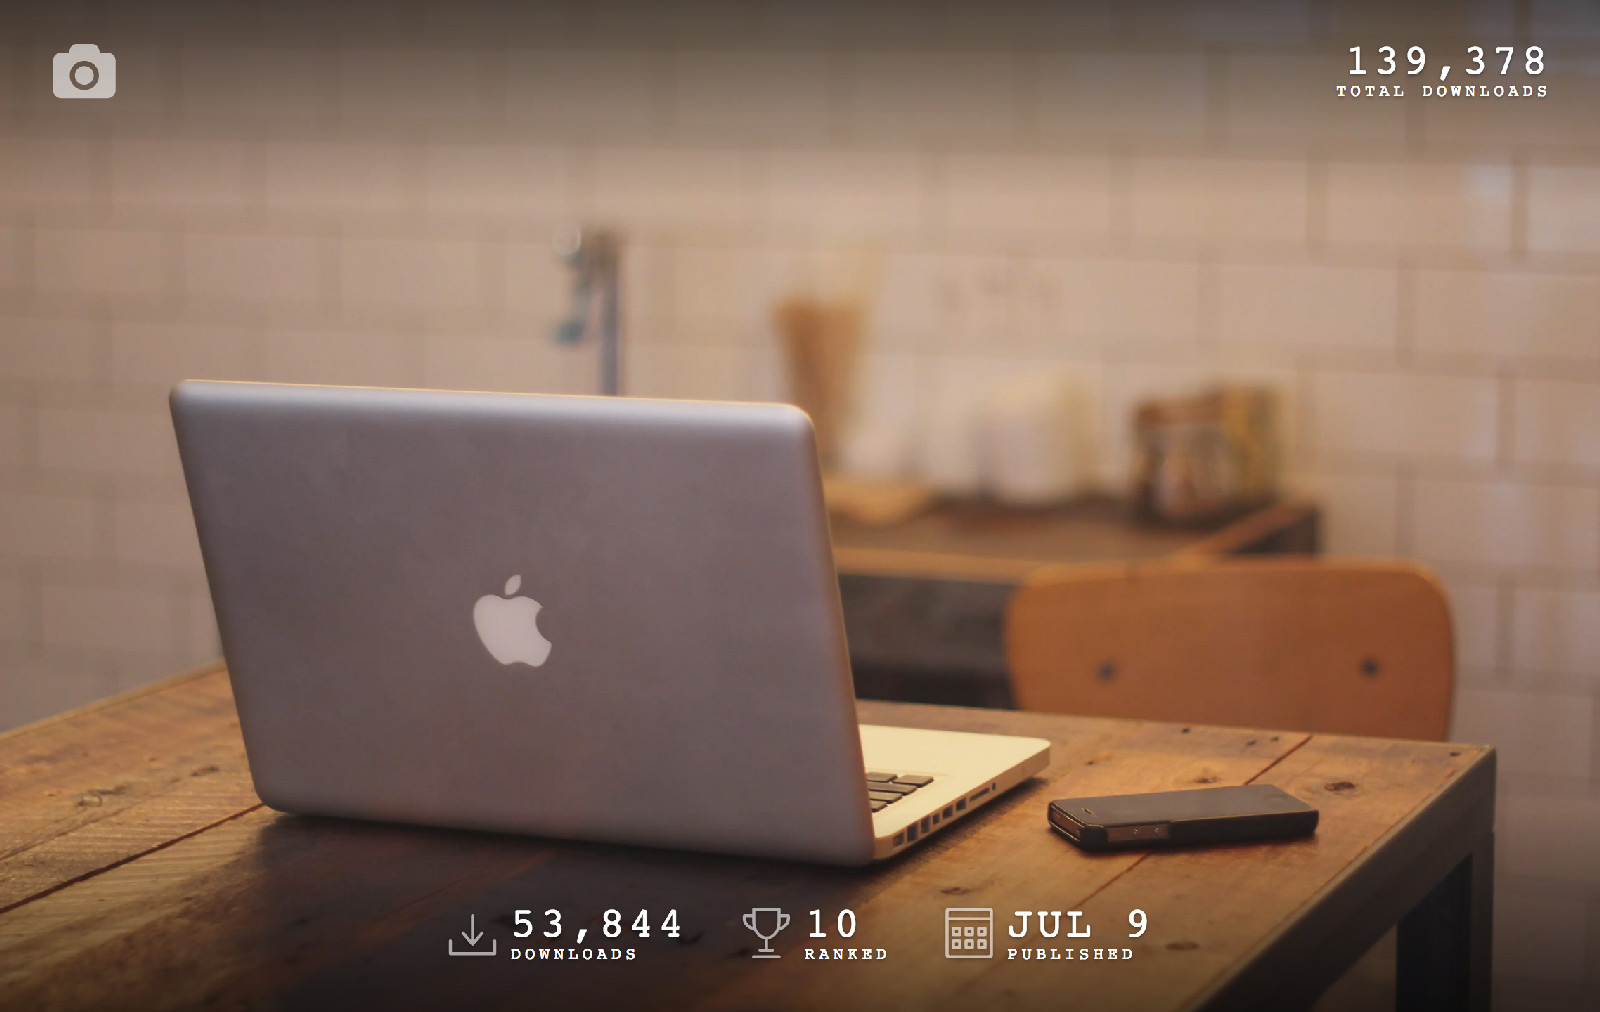 Unsplash Stats view — 50k downloads, 100k total downloads